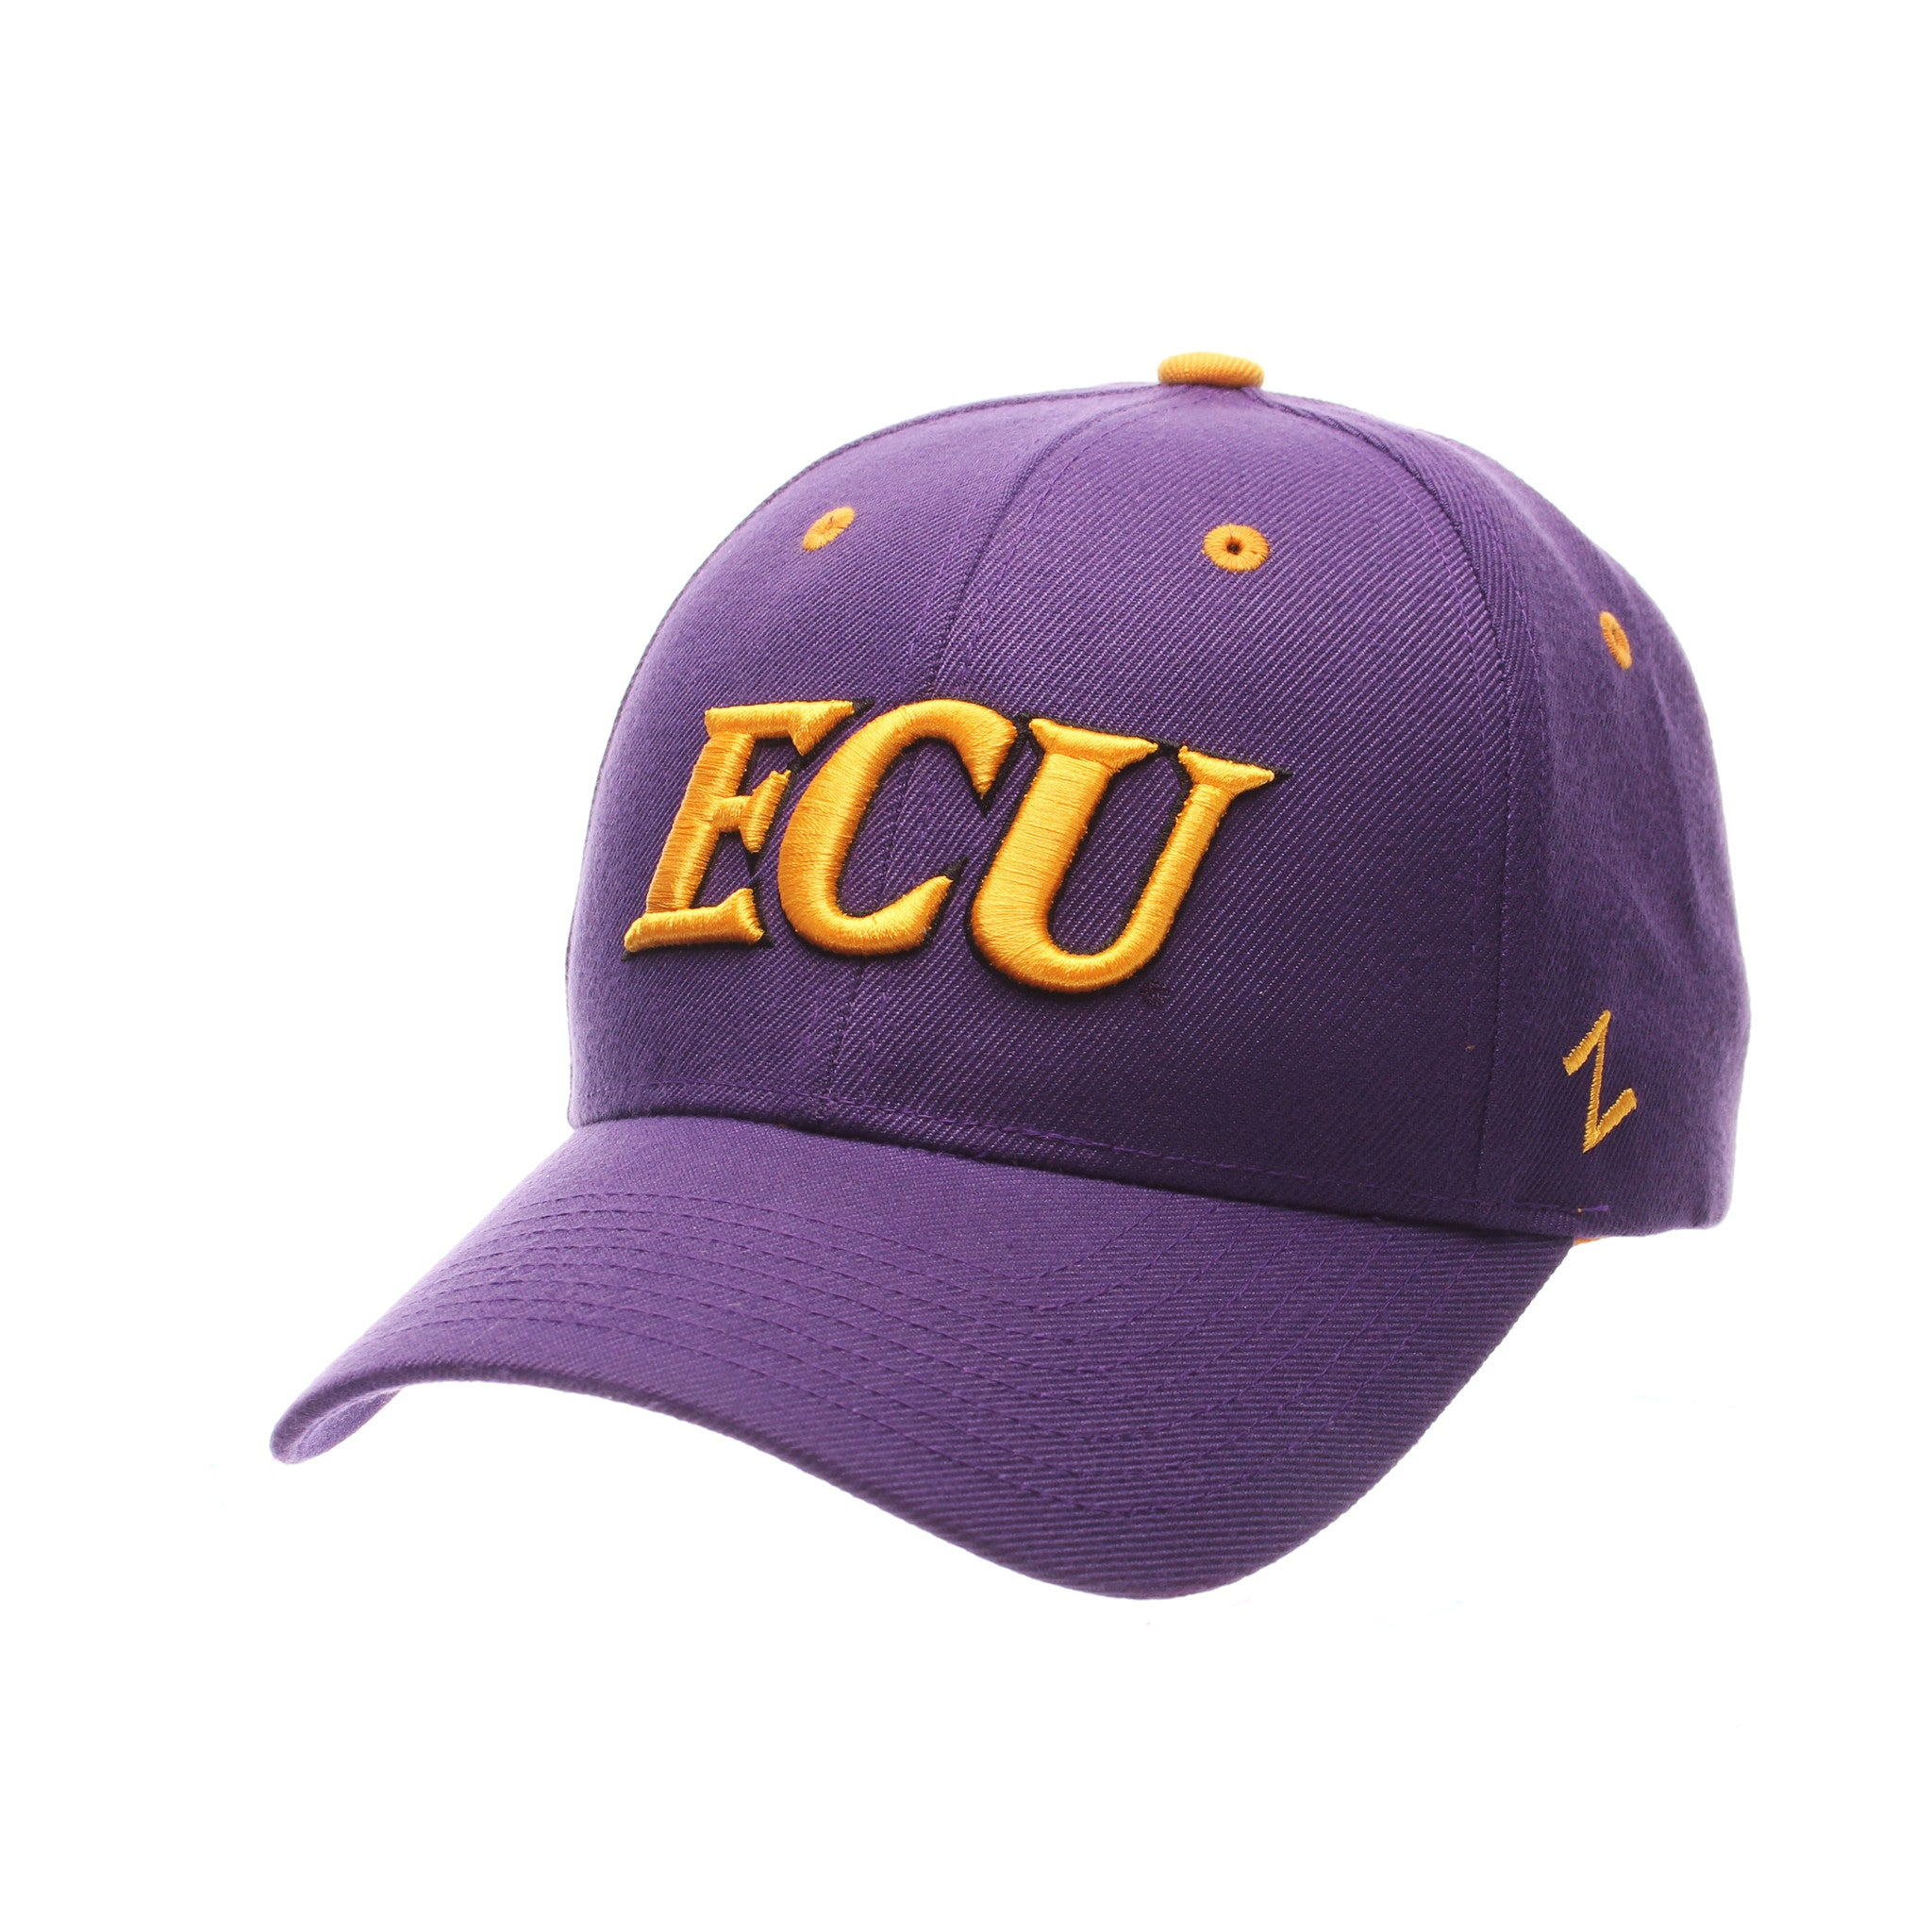 East Carolina University Competitor Standard (Low) (ECU) Purple Zwool Adjustable hats by Zephyr